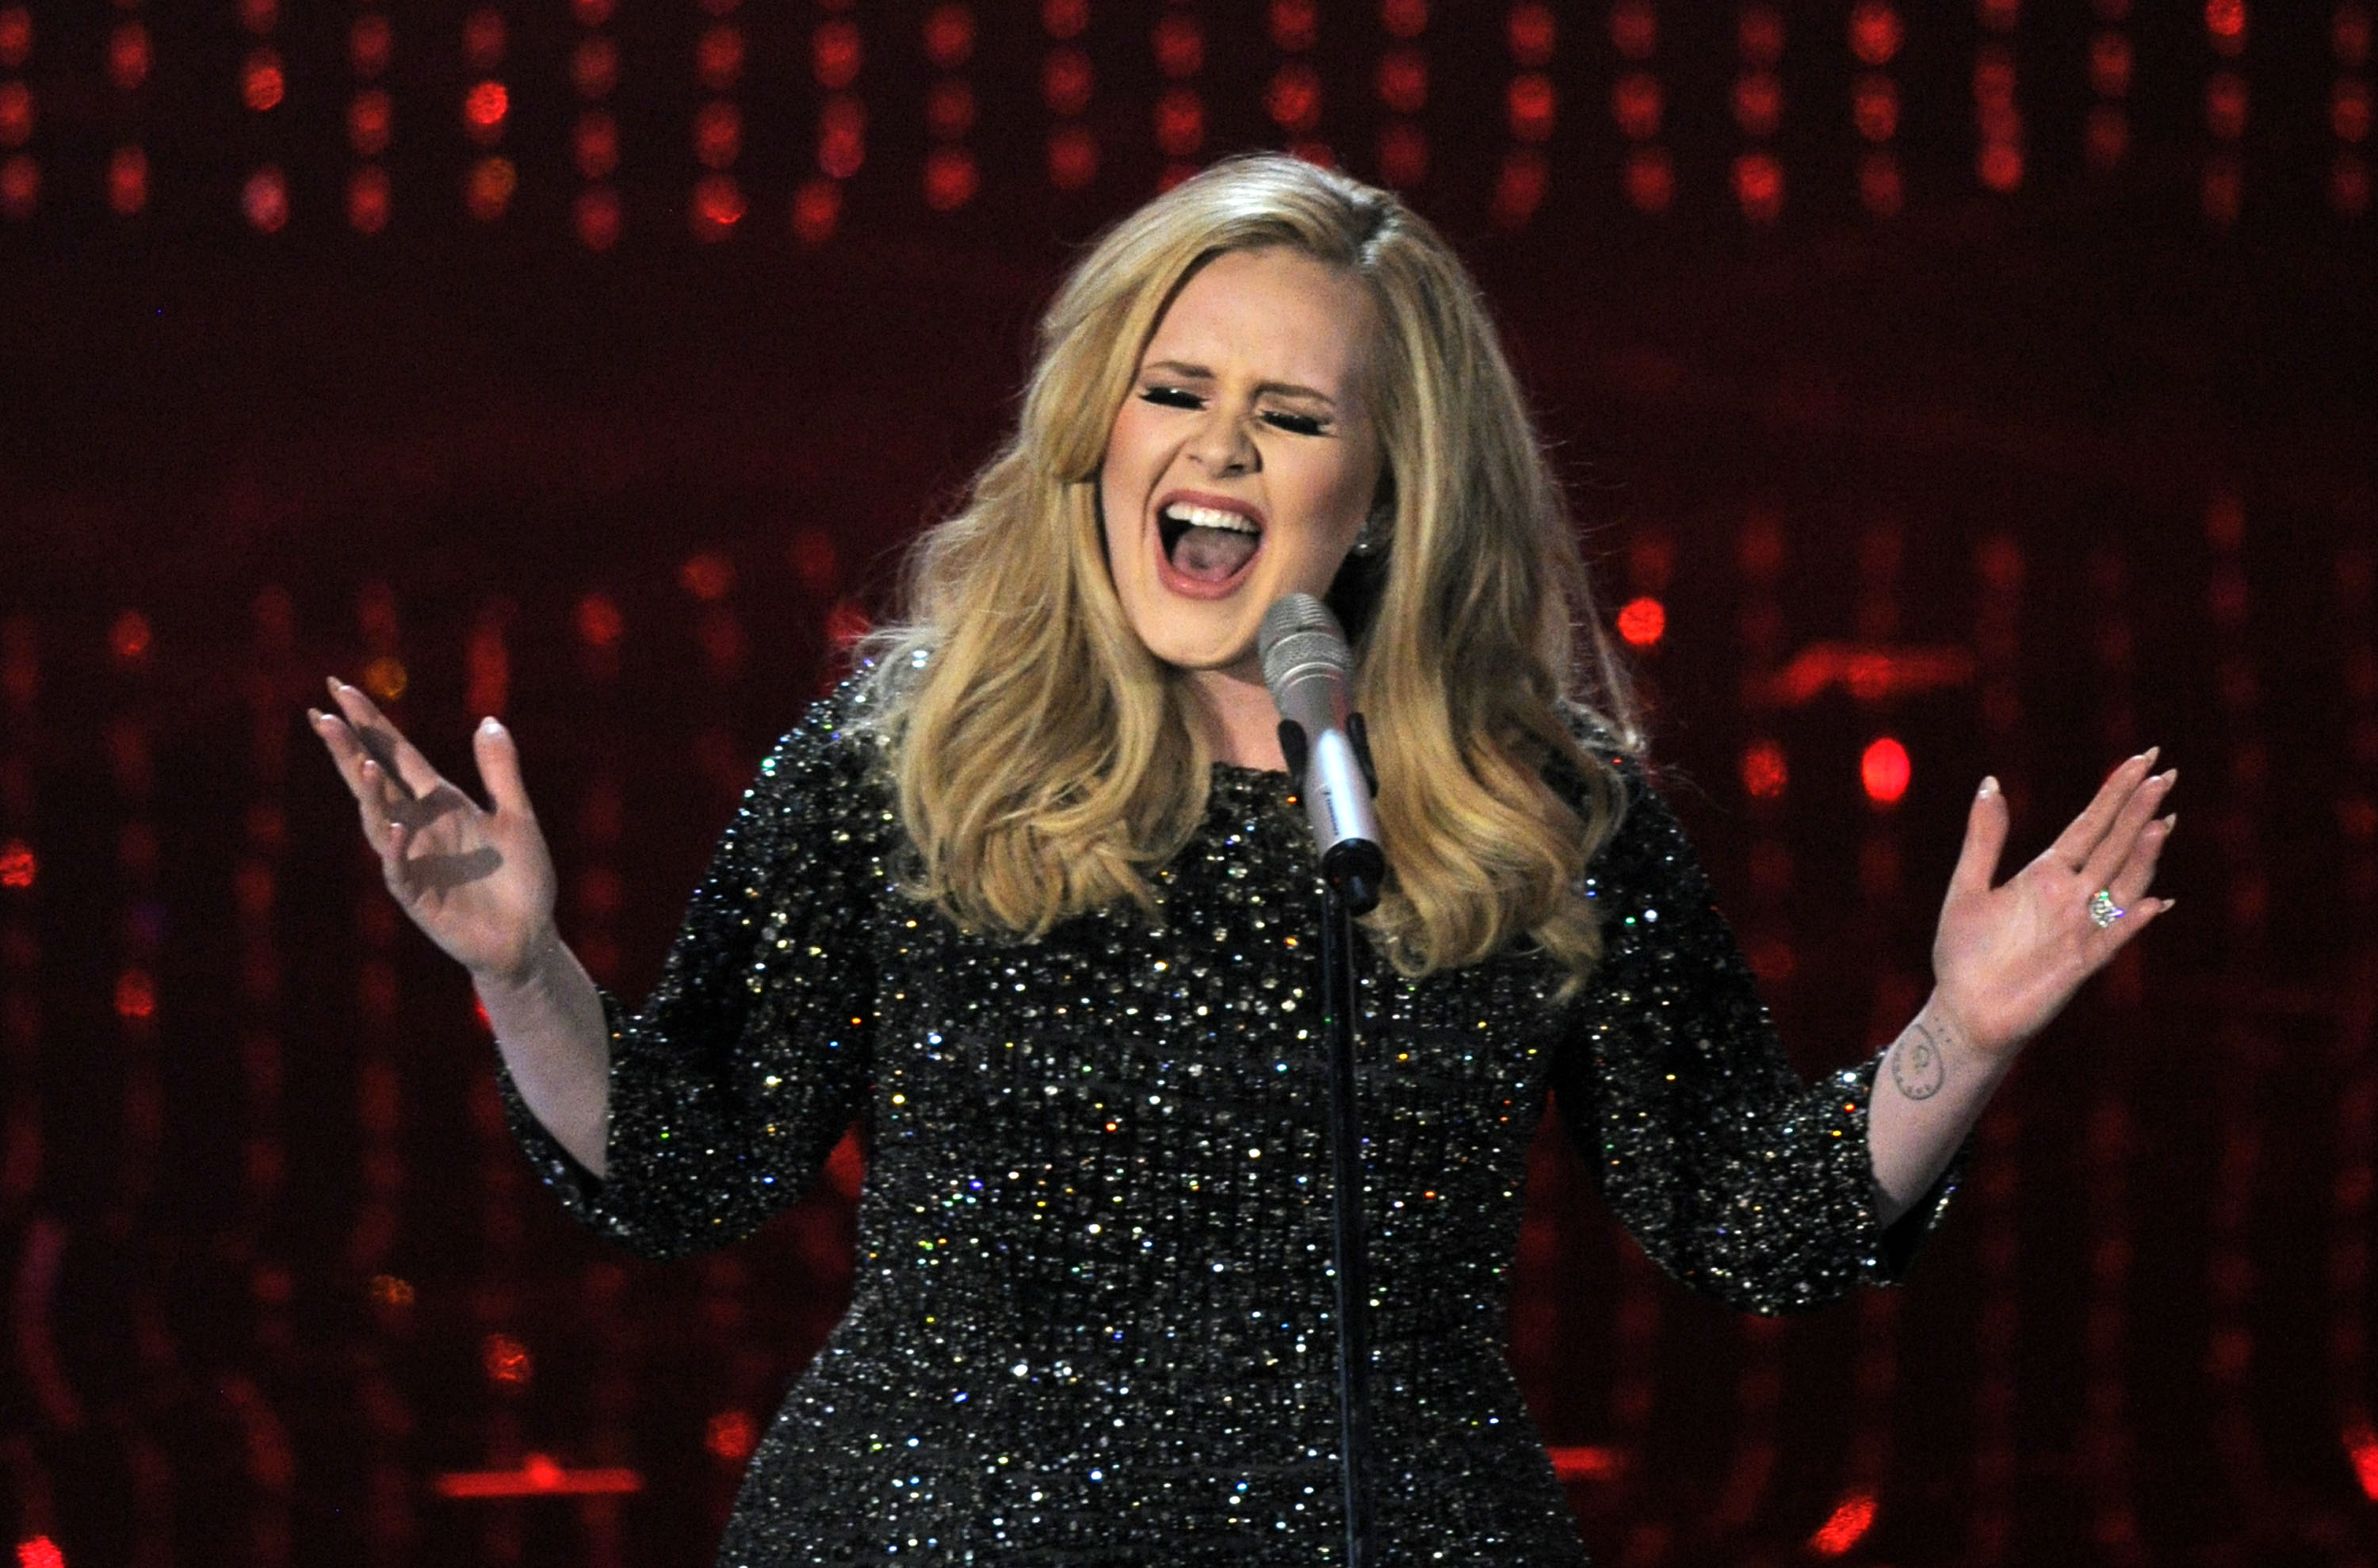 Adele performs during the Oscars at the Dolby Theatre in Los Angeles, in  2013.